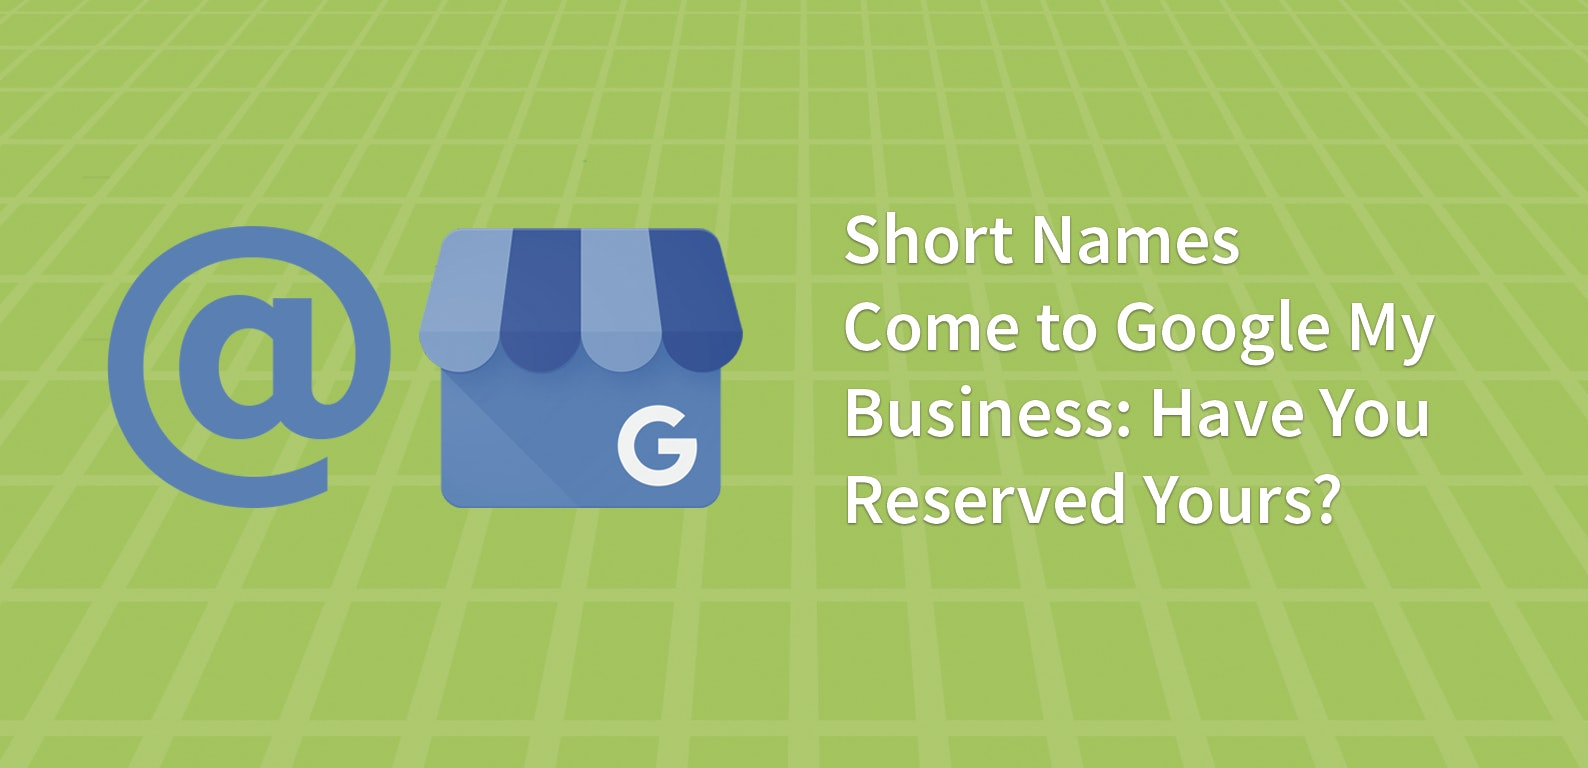 Short Names Come to Google My Business: Have You Reserved Yours?